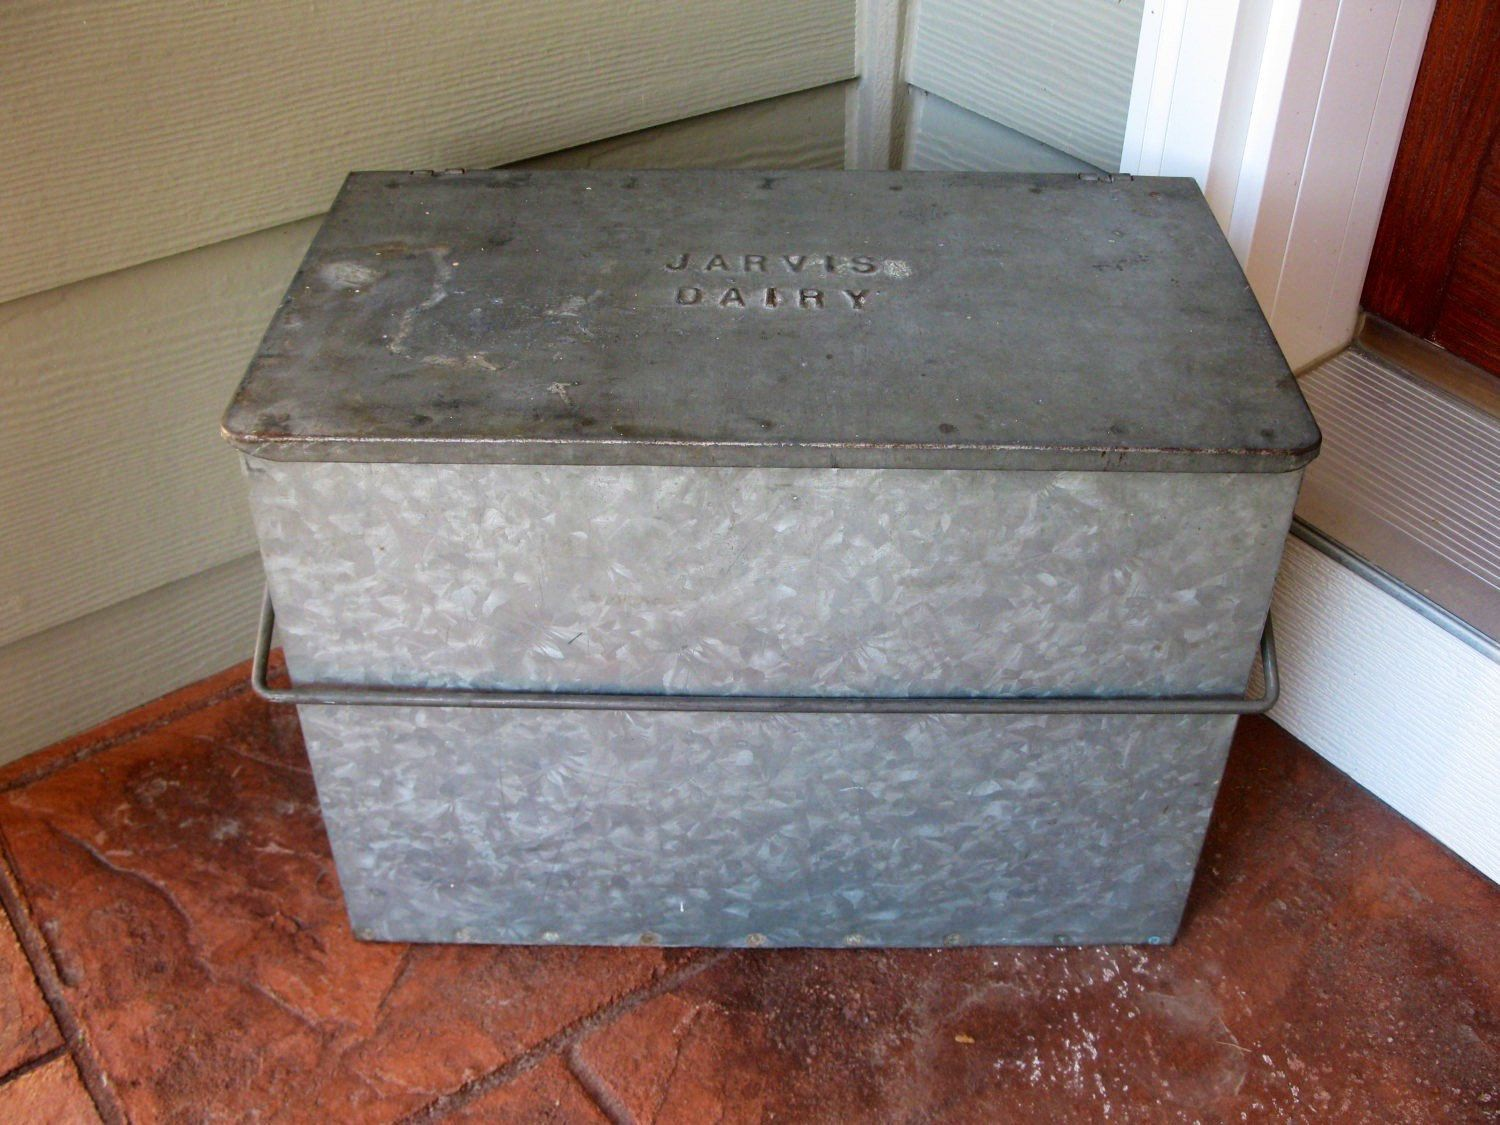 Vintage Milk Box Galvanized Metal Jarvis Dairy Porch Box Insulated 1950s Home Delivery Swinging Handle Milk Delivery L Milk Box Galvanized Metal Milk Man